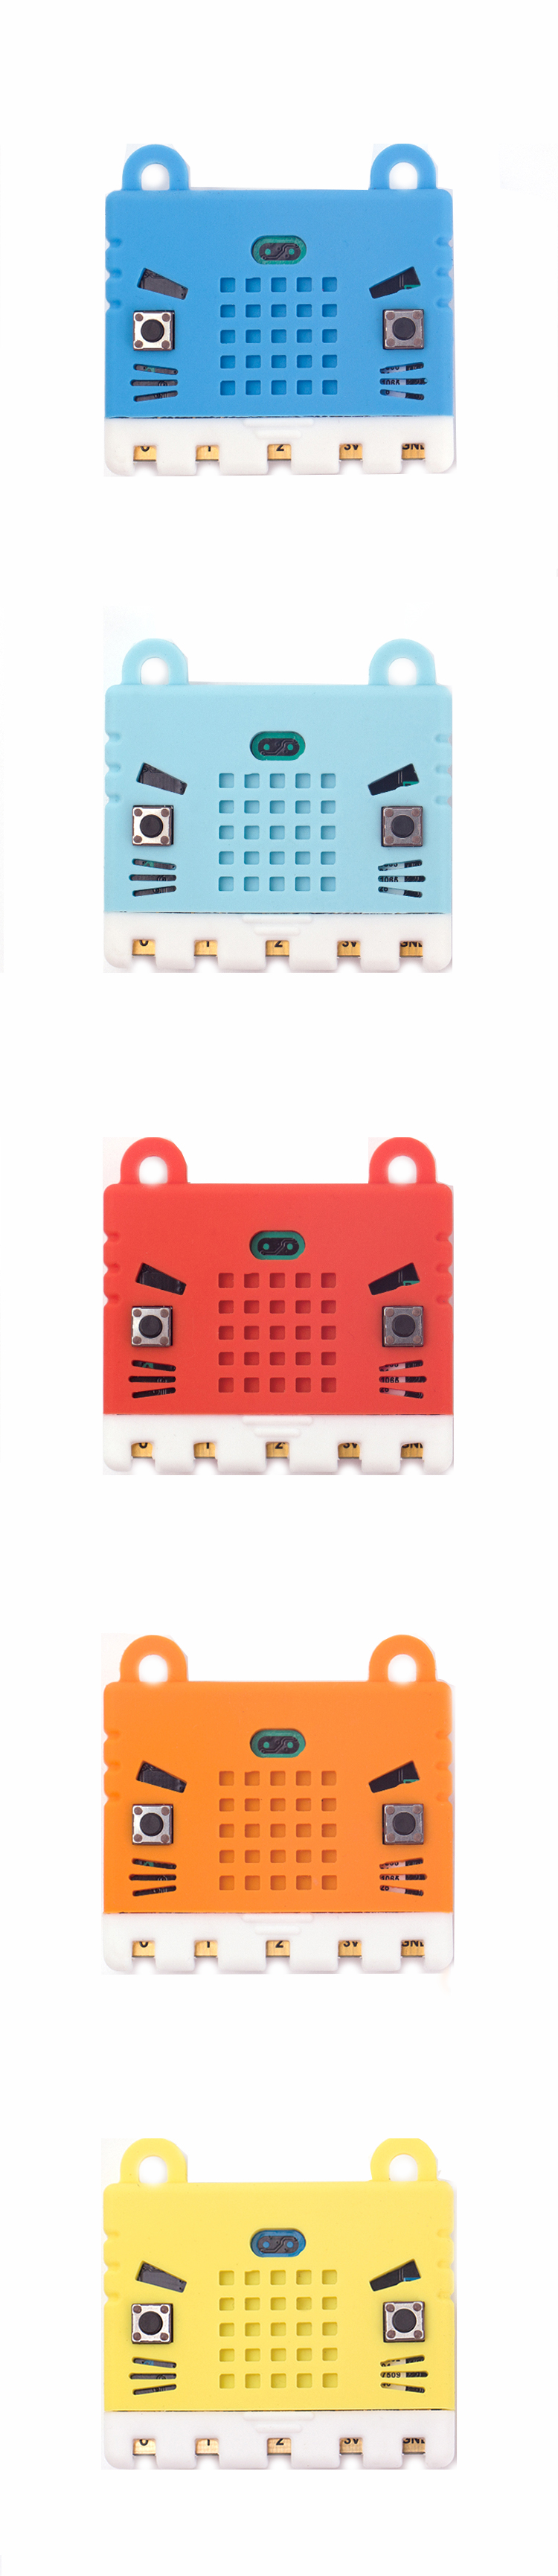 KittenBot® Micro:bit Silicone Cute Pattern Case for Micro:bit Expansion Board